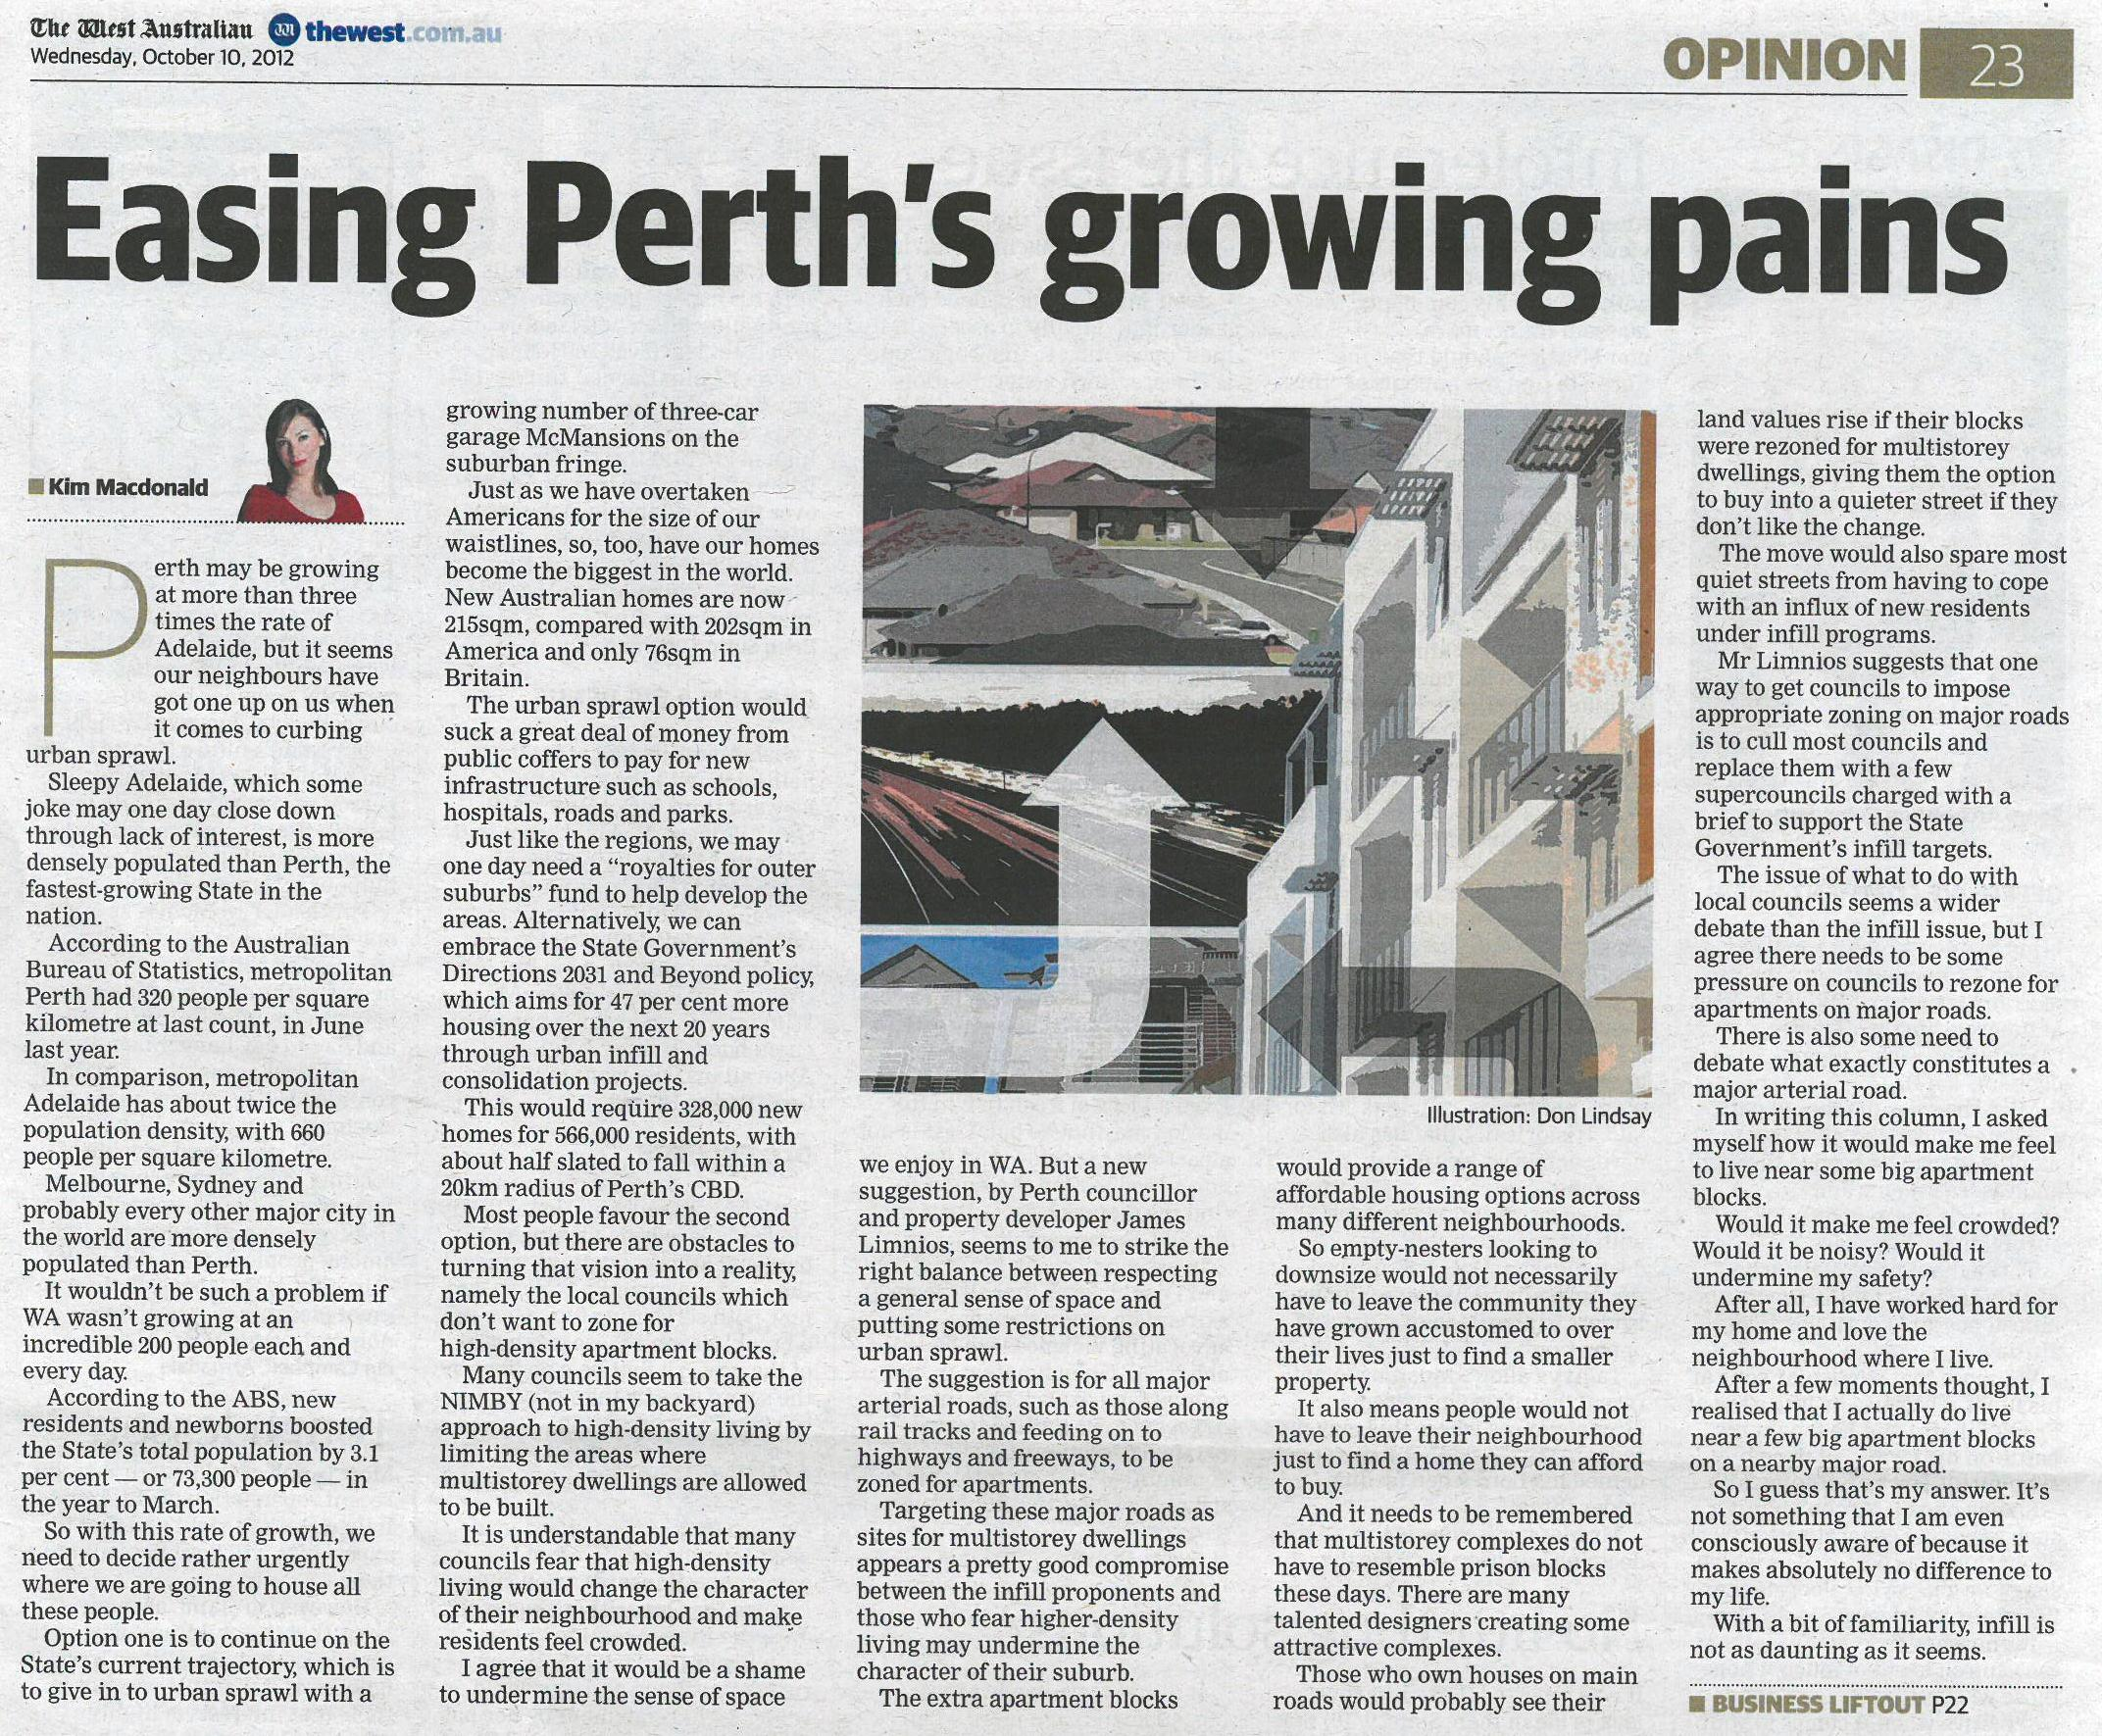 Easing Perth's growing pains